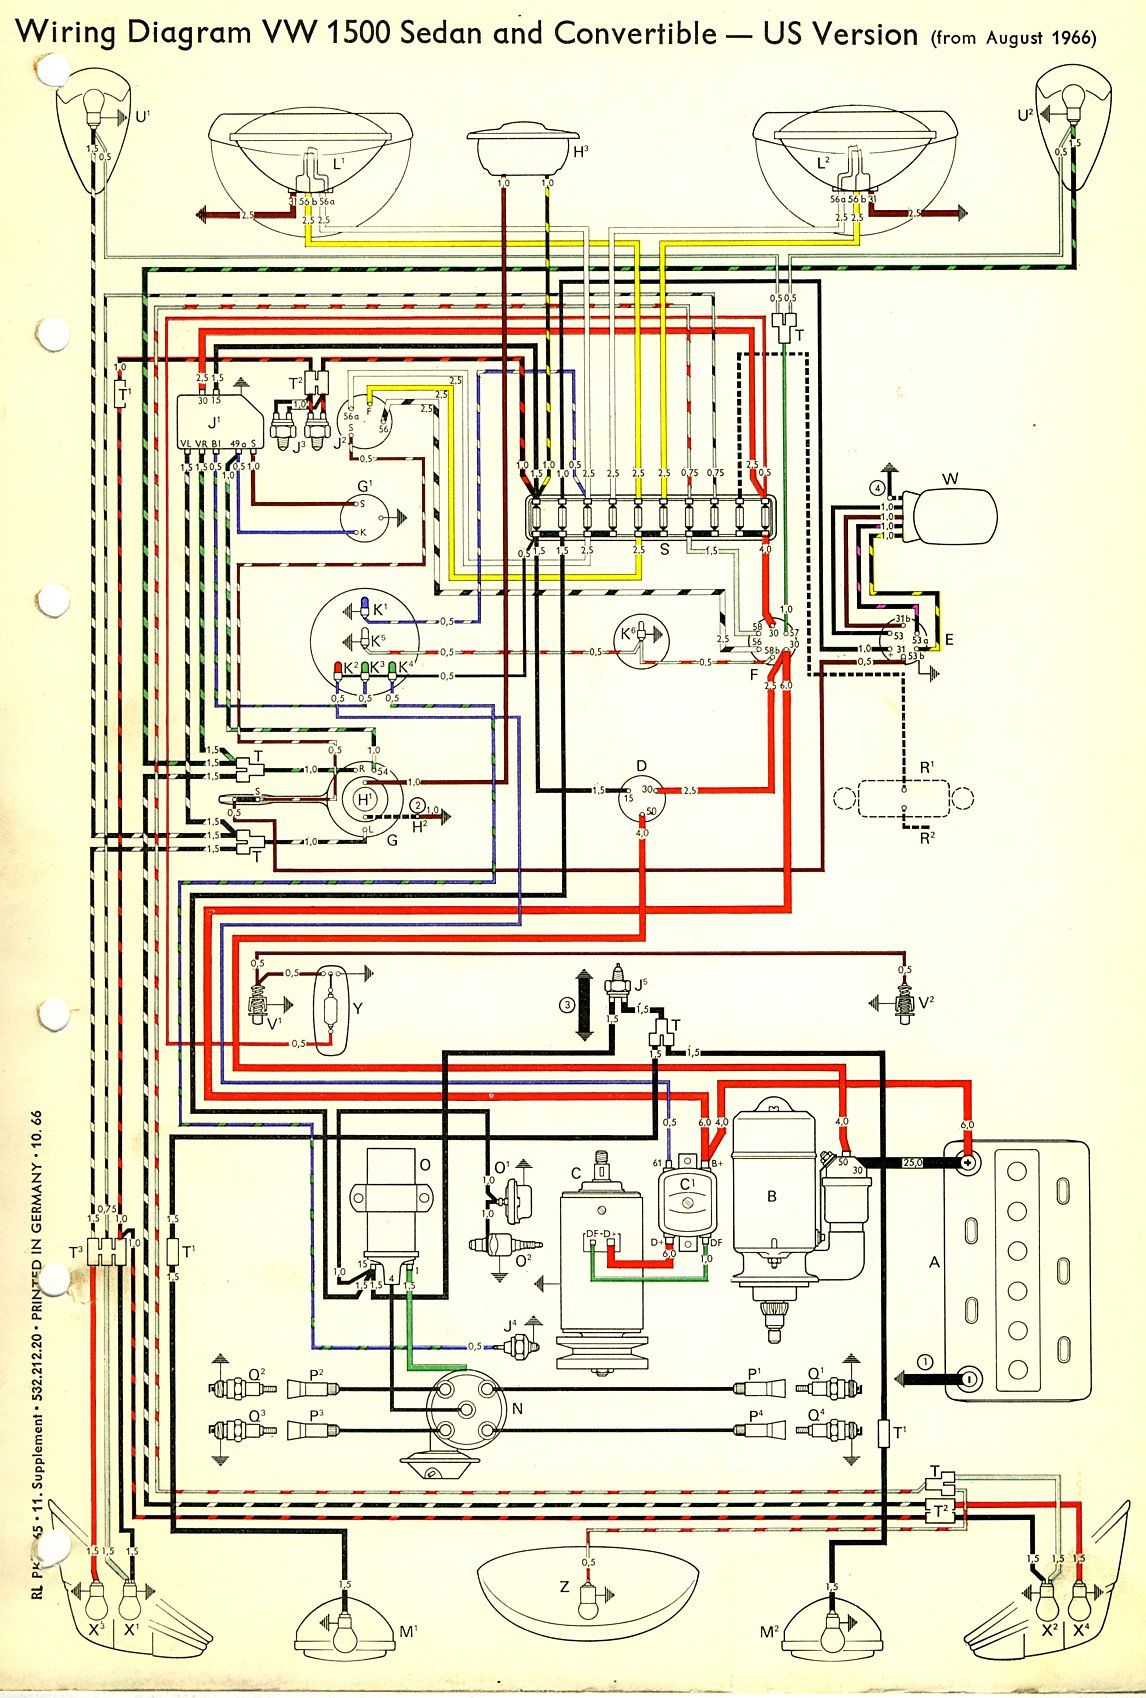 2000 beetle wiring schematic wiring diagram tutorial 1999 VW Beetle Fuse Diagram 2000 vw beetle wiring diagram wiring diagram m6factory wiring diagram 2000 new beetle wiring diagram data